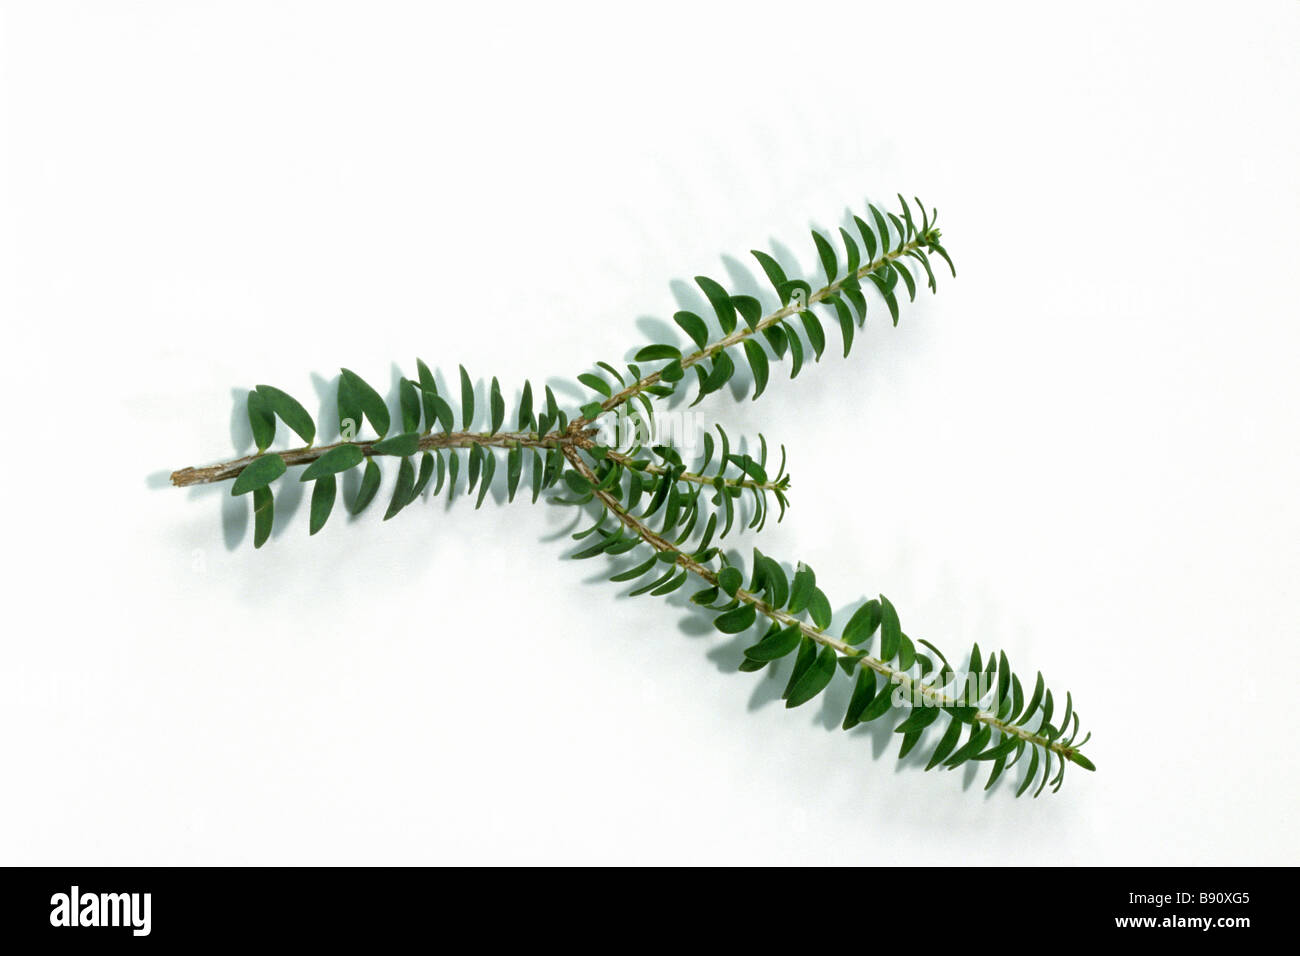 Green Flowered Mytle (Melaleuca diosmifolia), twig, studio picture - Stock Image